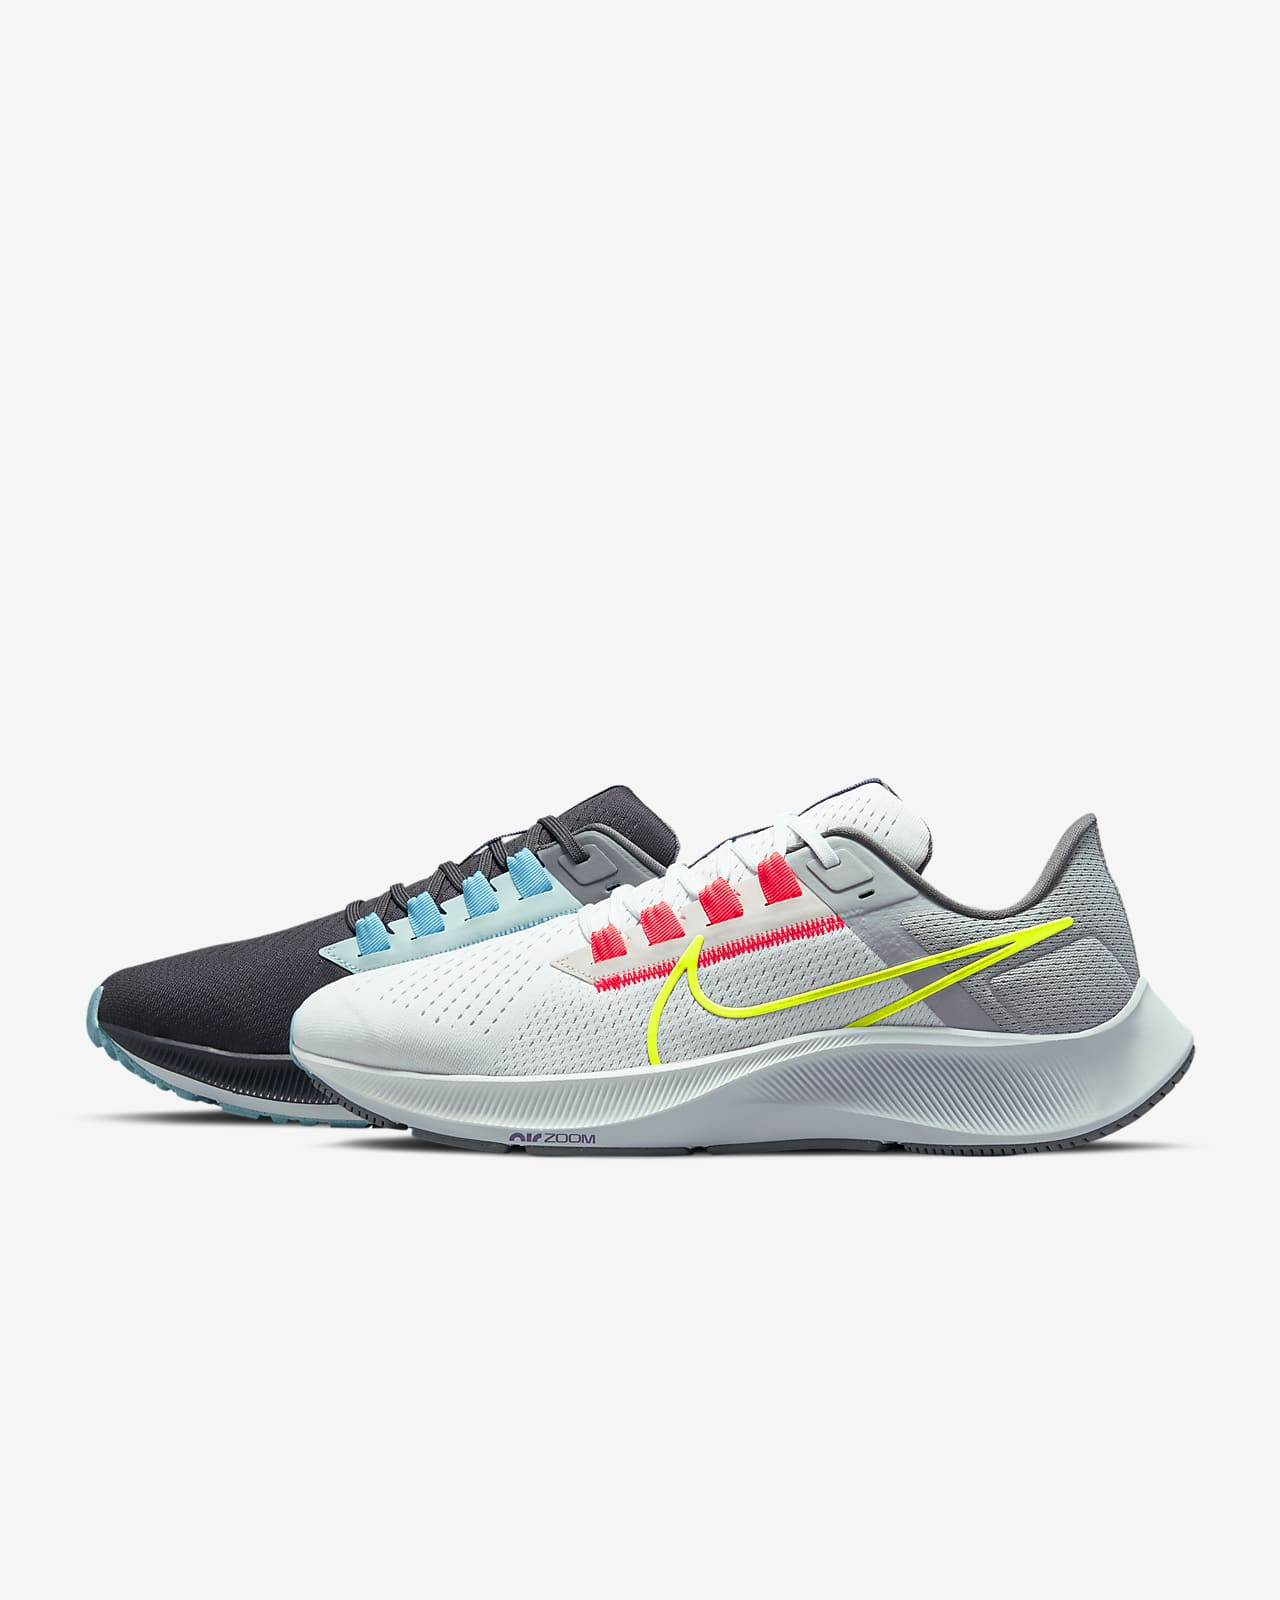 Chaussure de running Nike Air Zoom Pegasus 38 Limited Edition pour Homme